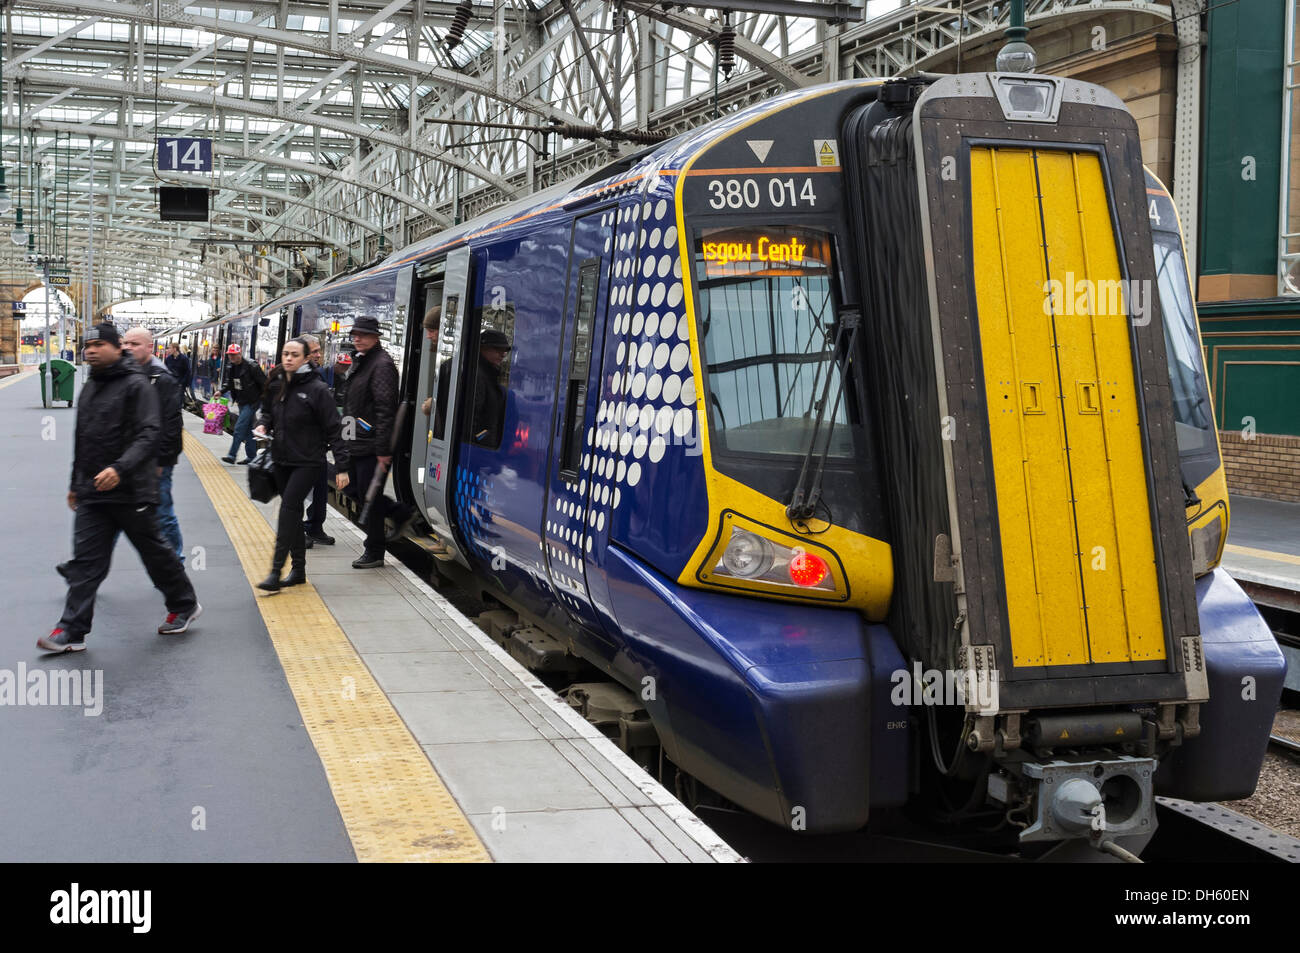 Passengers getting off an intercity train at Glasgow Central Railway station, Glasgow, Scotland, UK - Stock Image